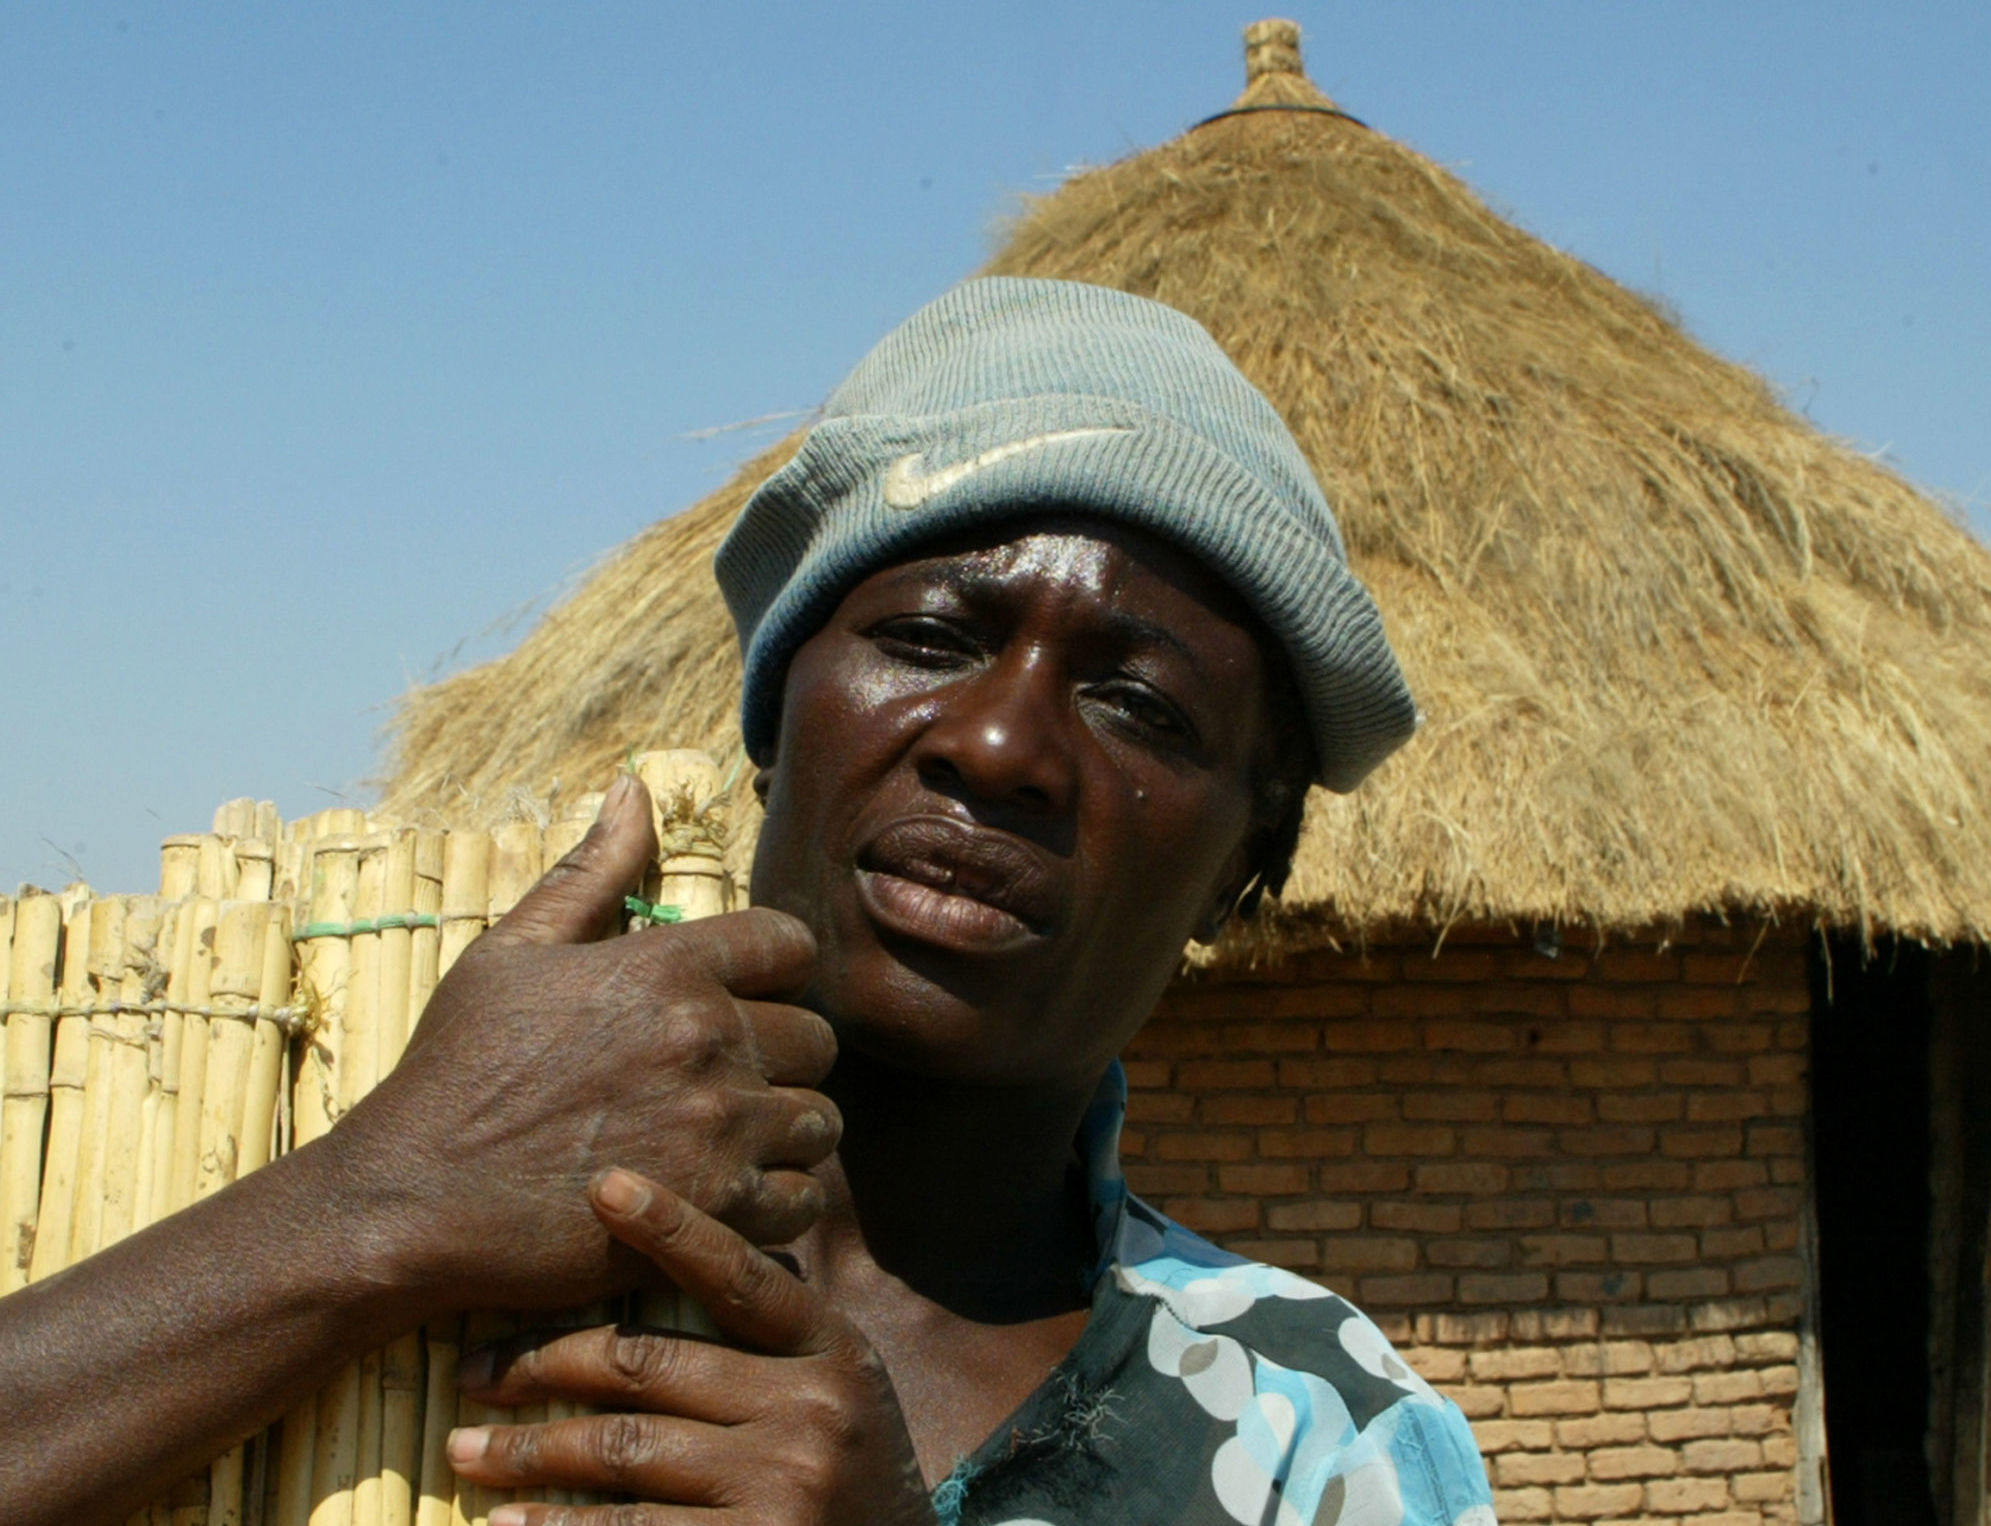 Zimbabwean villager Connie Garandemo poses in front of a hut on August 6, 2012 in Zimbabwe's Buhera district